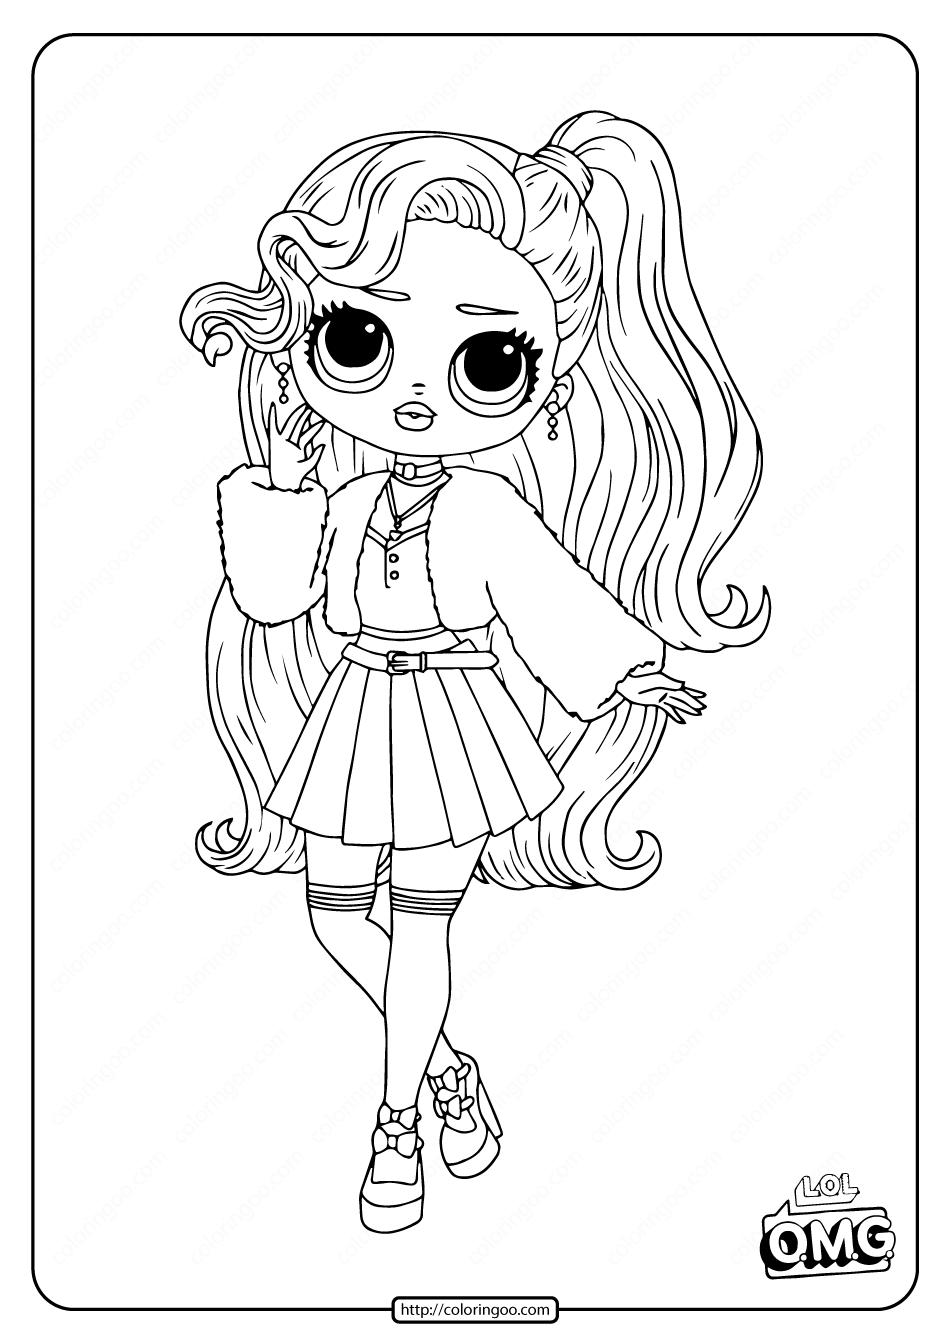 Lol Omg Coloring Pages Printable : coloring, pages, printable, Surprise, Coloring, Unicorn, Pages,, Pages